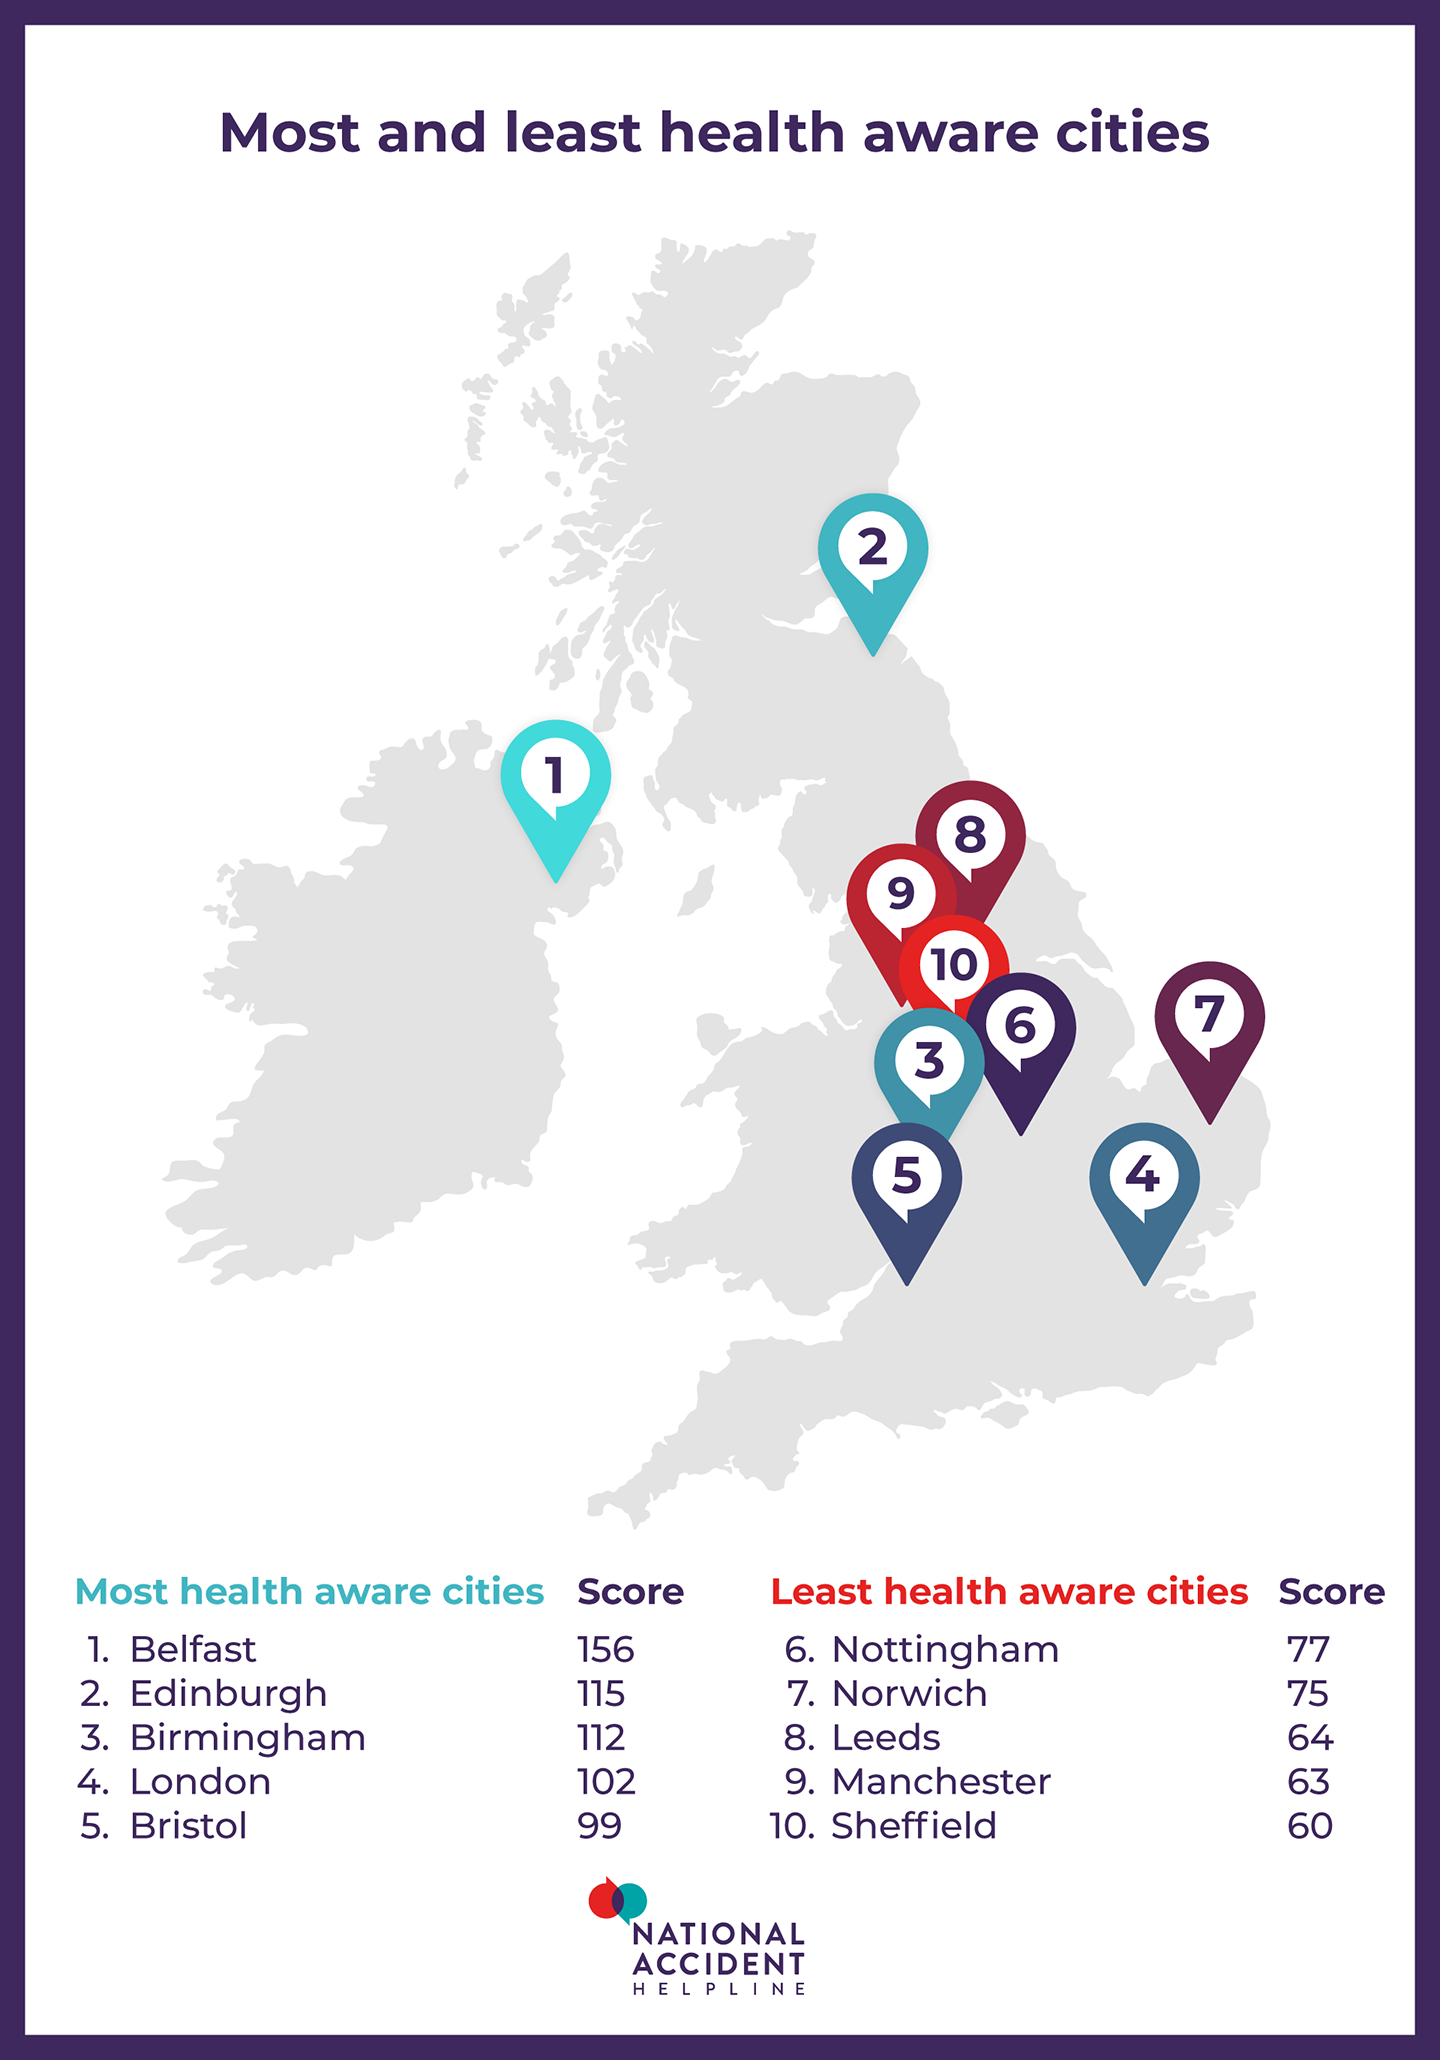 most and least heath aware cities